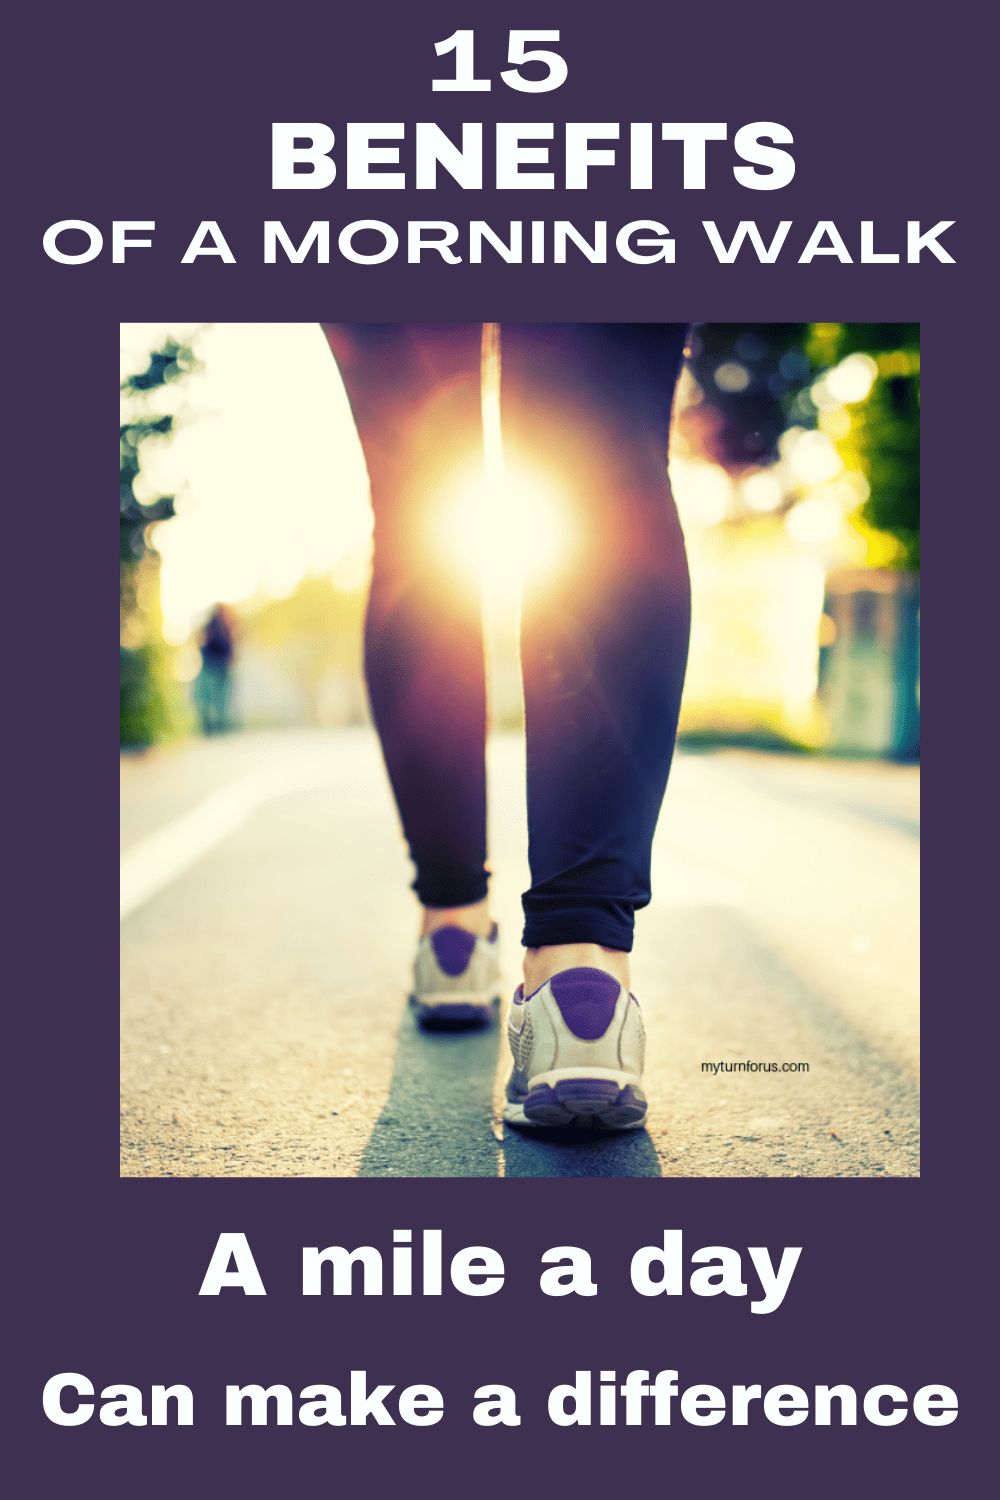 Benefits of a morning walk-walking a mile a day